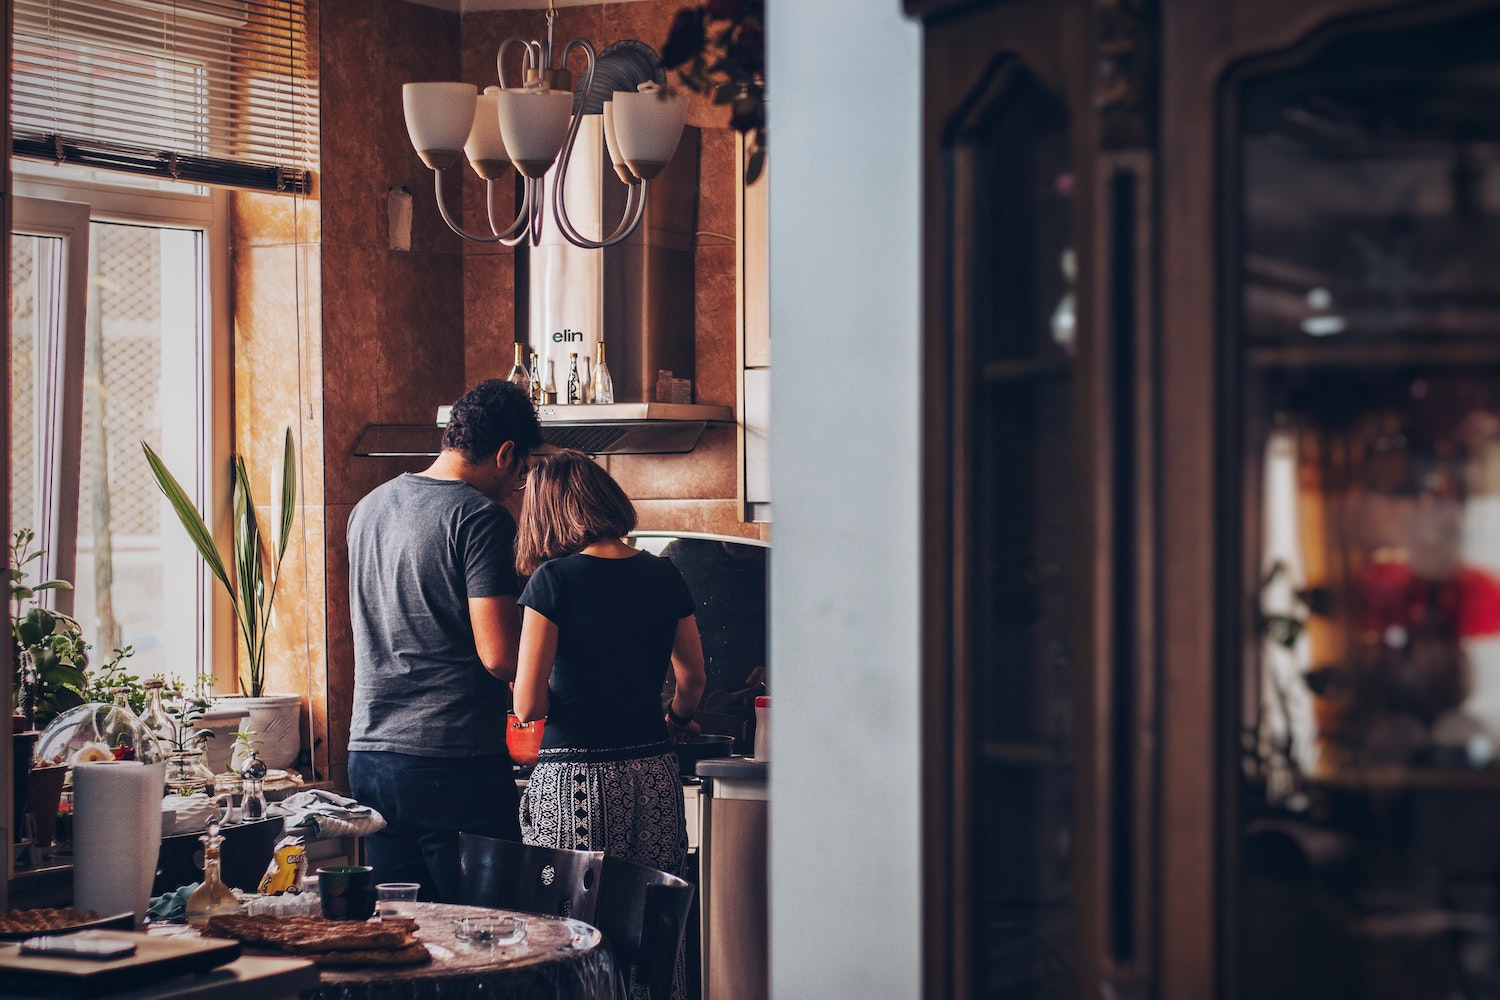 couple cooking together in their home kichen